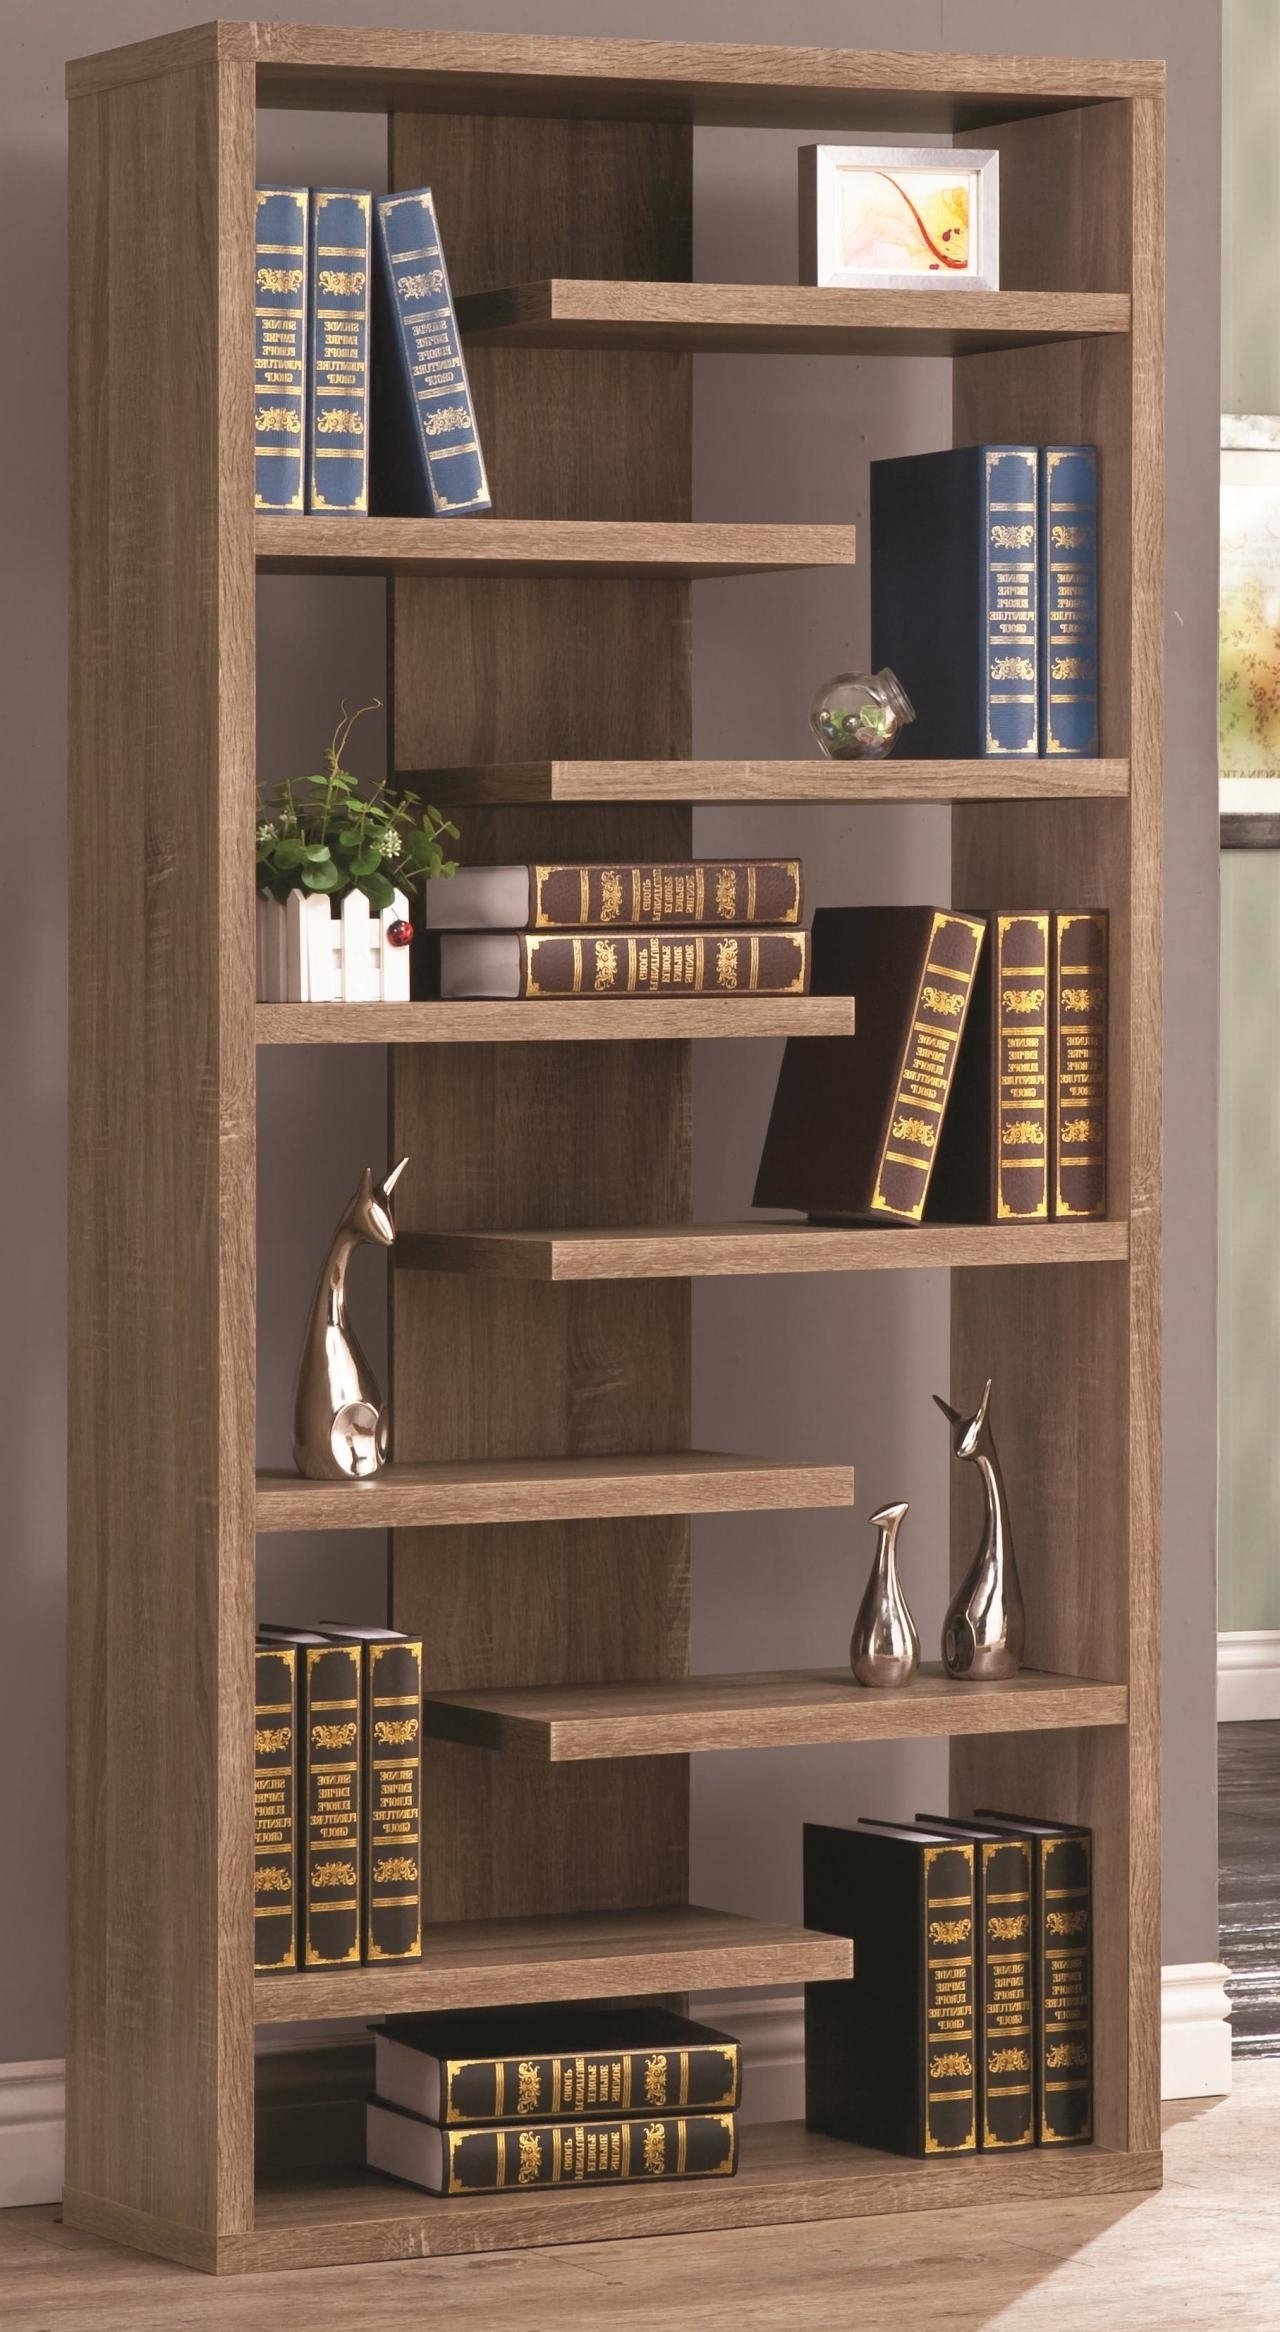 2018 Rustic Wood Cool Retail Bookcase Floating Shelves Store Unique Throughout Unique Bookcases (View 3 of 15)